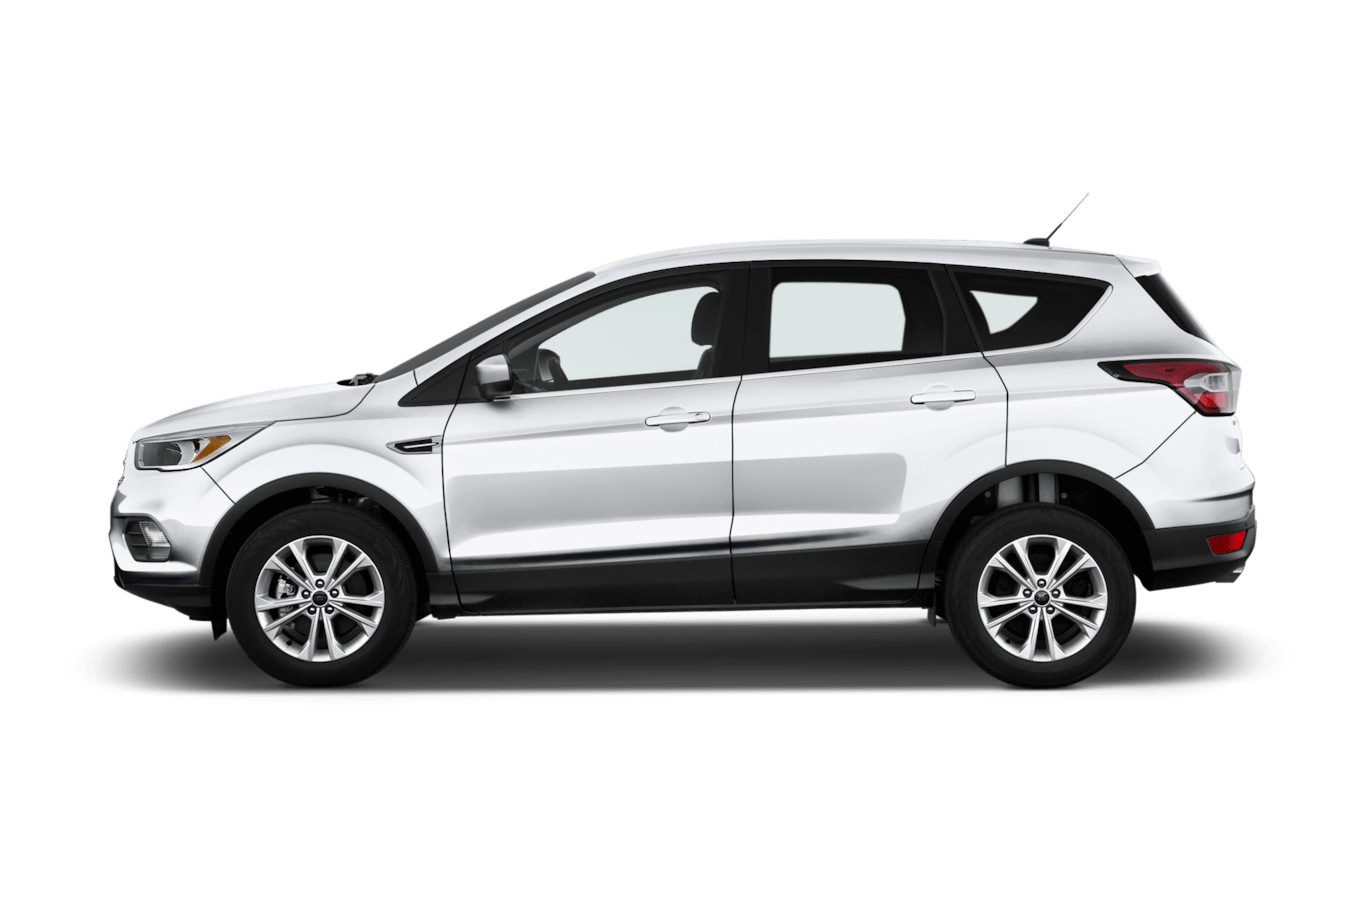 2018 Ford Escape Reviews and Rating  Motor Trend